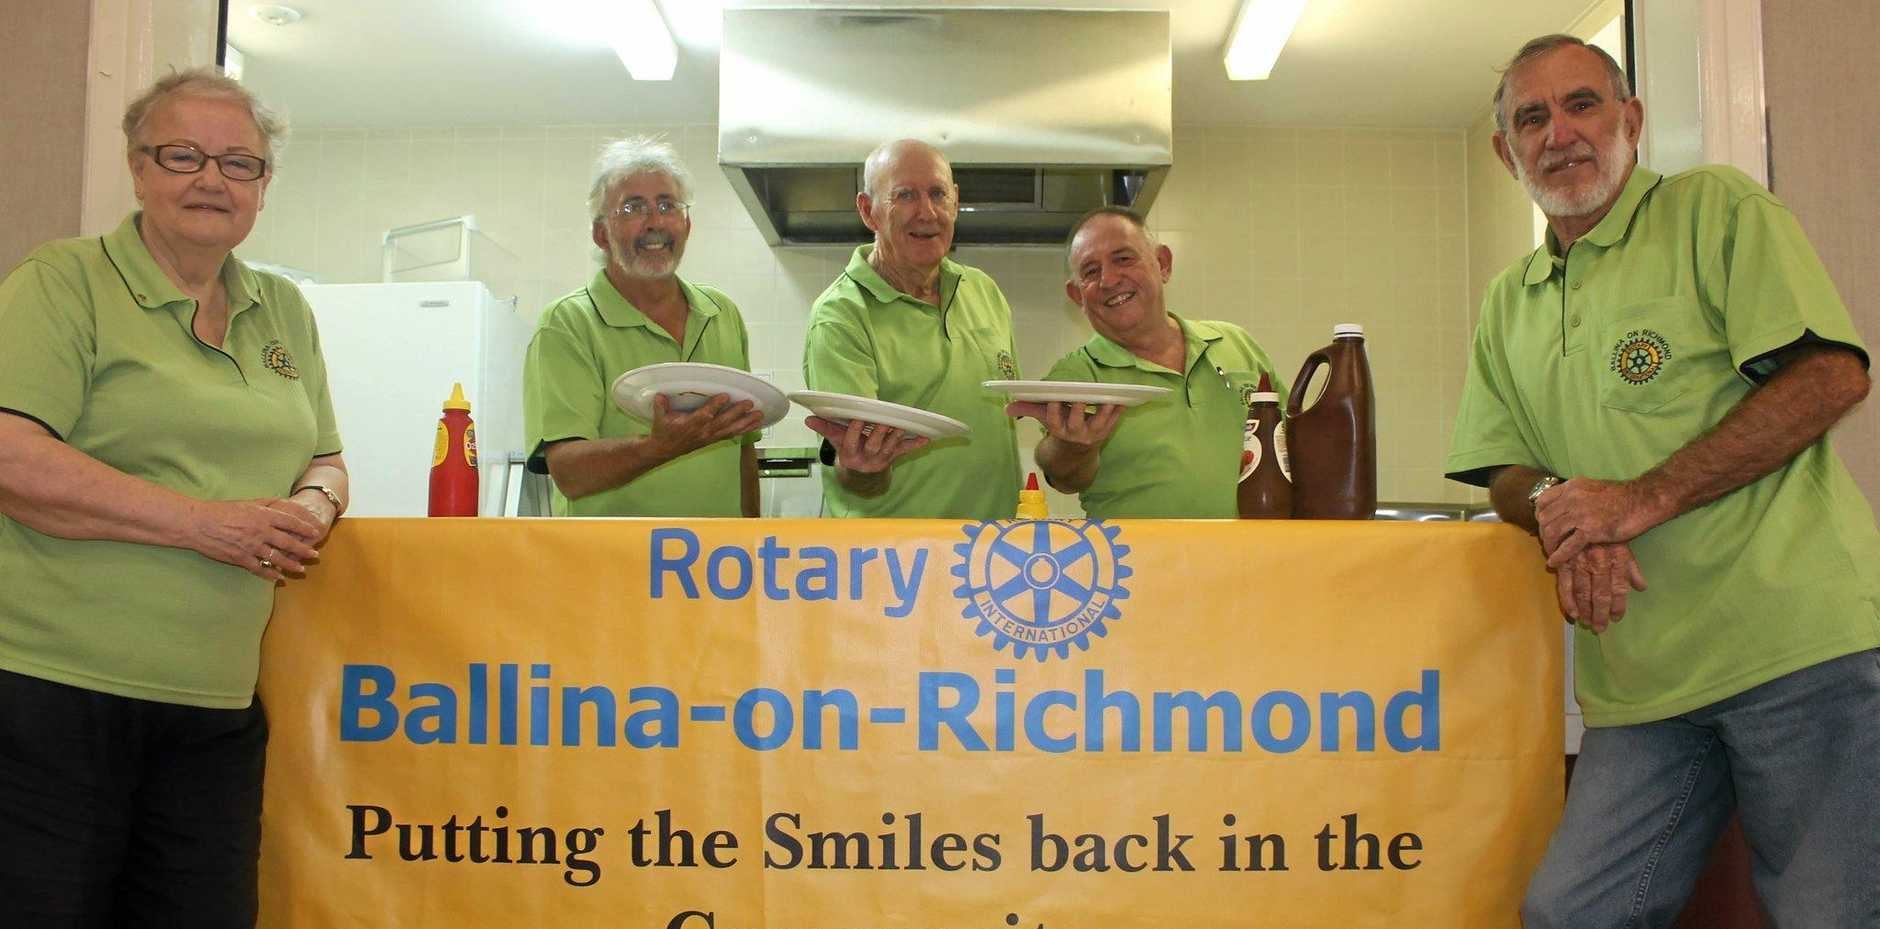 DINNER ON US: Rotary Club of Ballina-on-Richmond members Lee Soutar, Shane Cullinane and Wayne Crawford help prepare for the club's first free dinner service for those doing it tough.